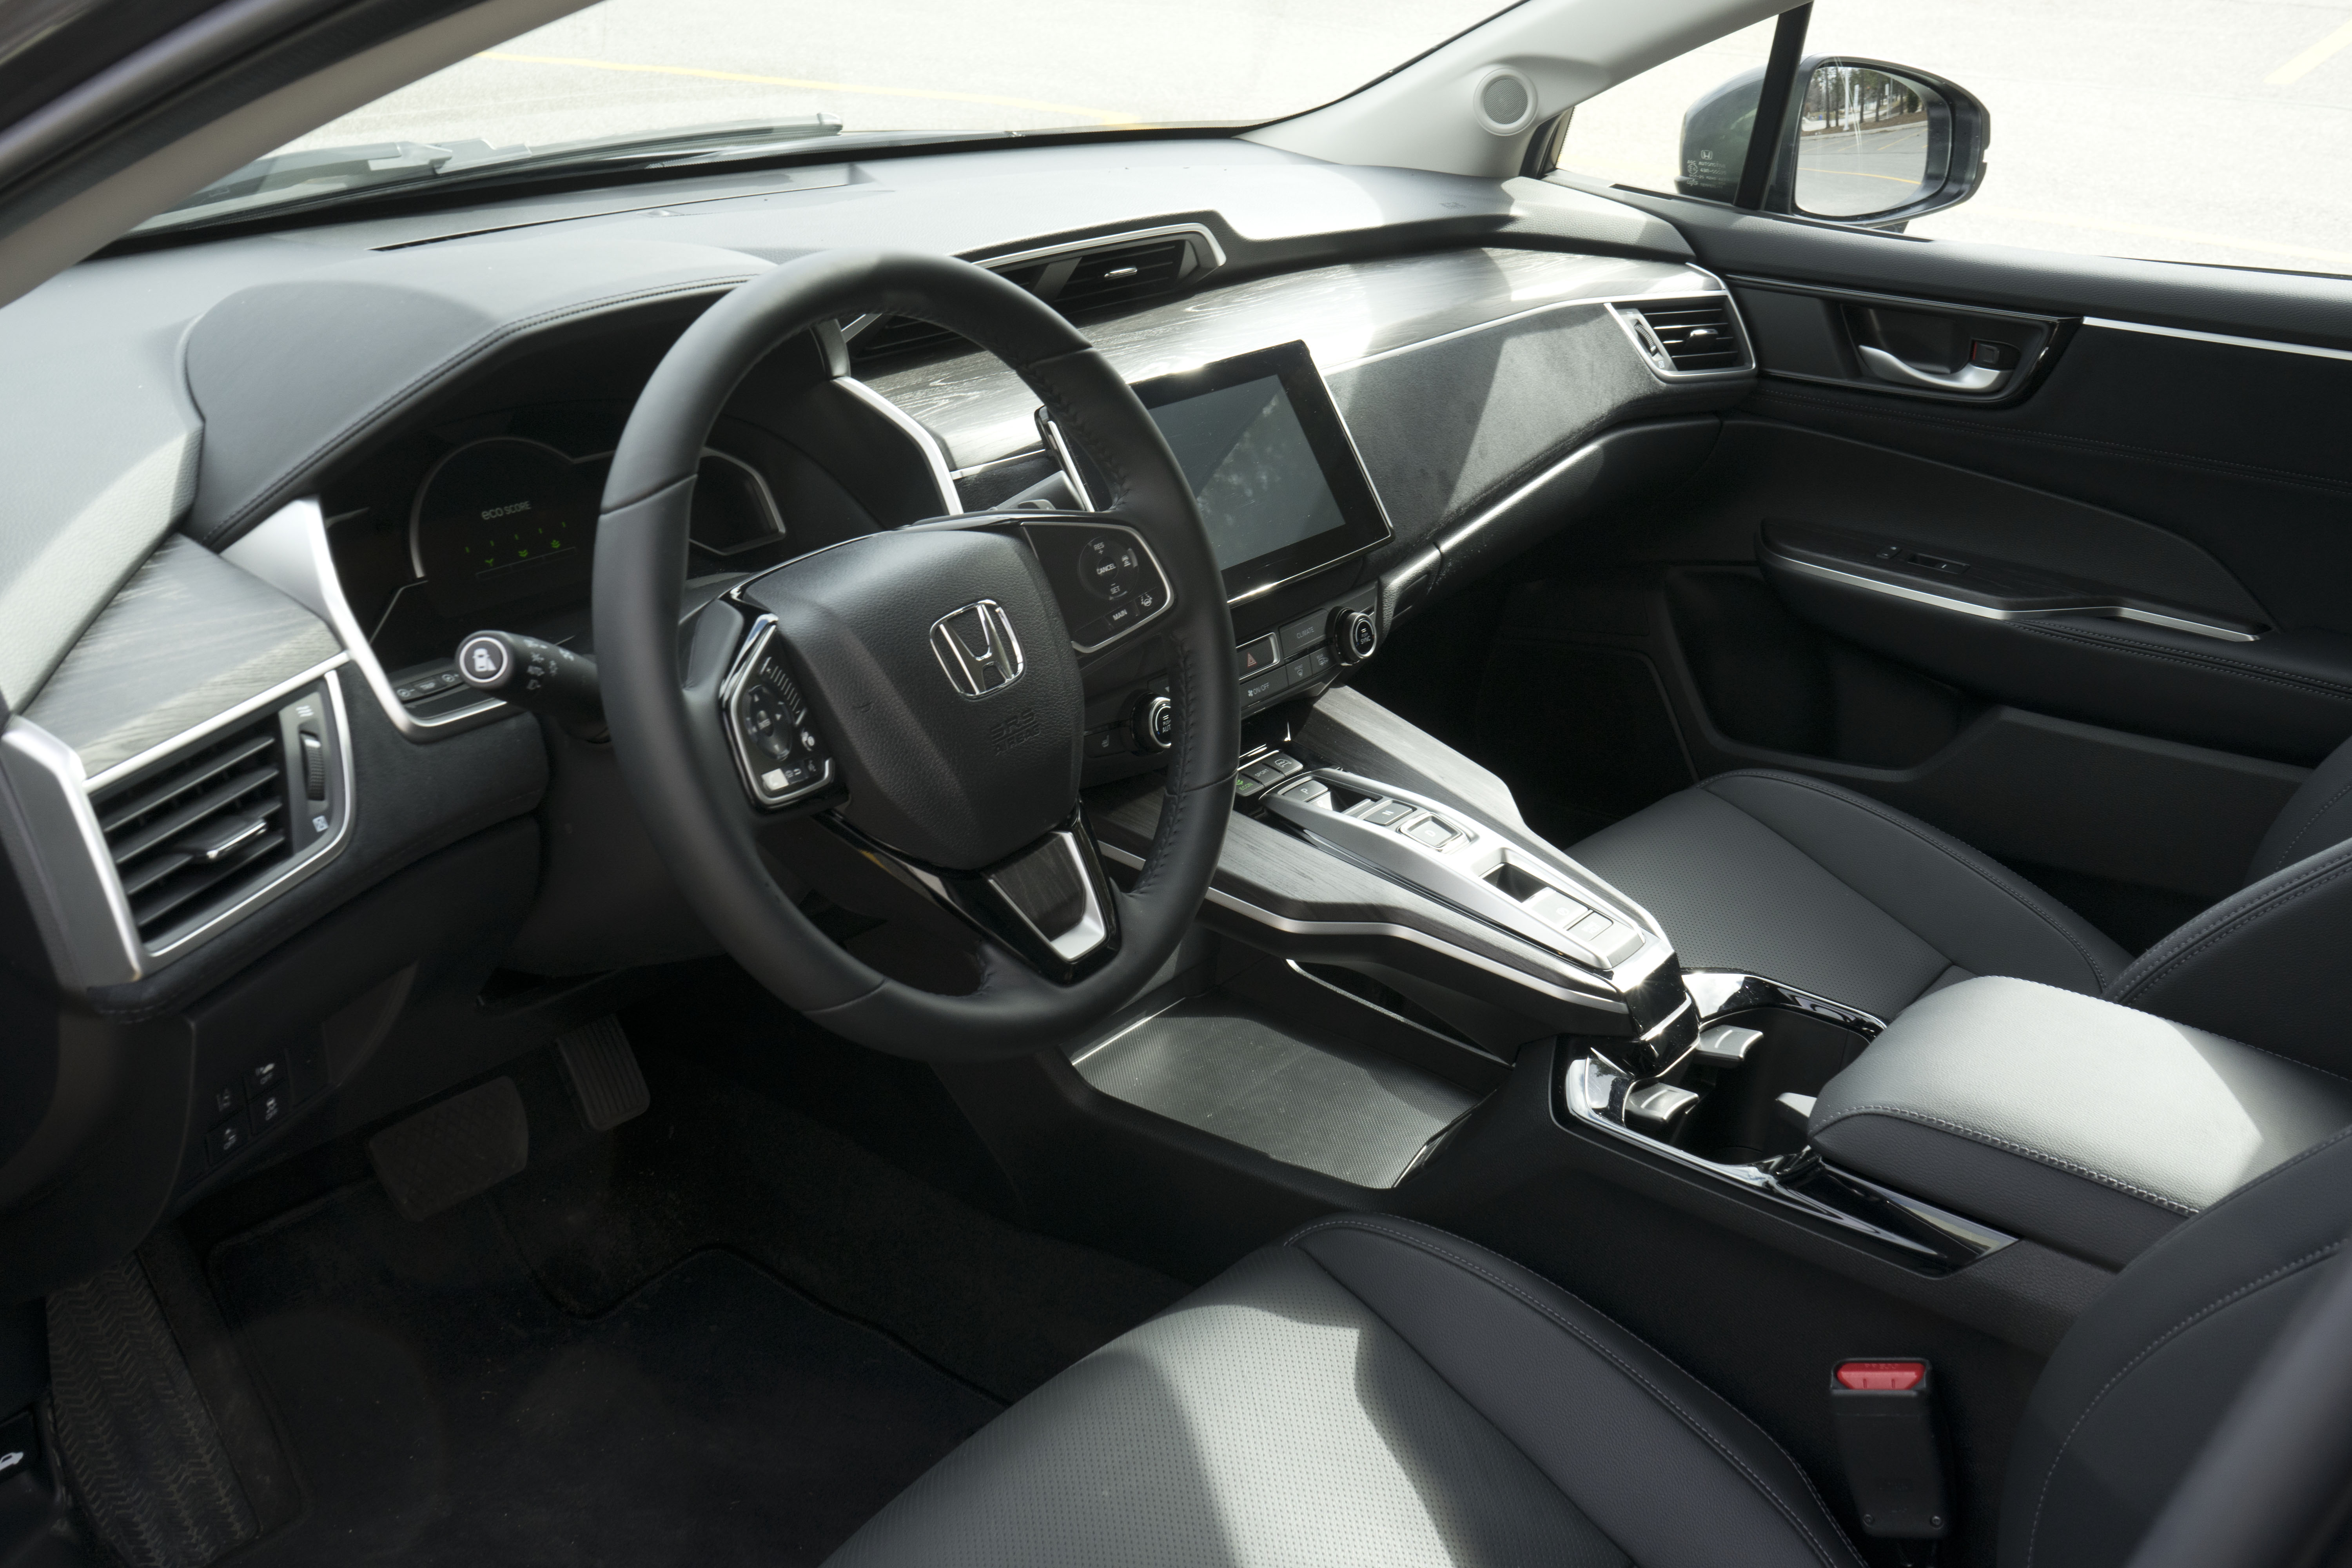 2018 Honda clarity interior